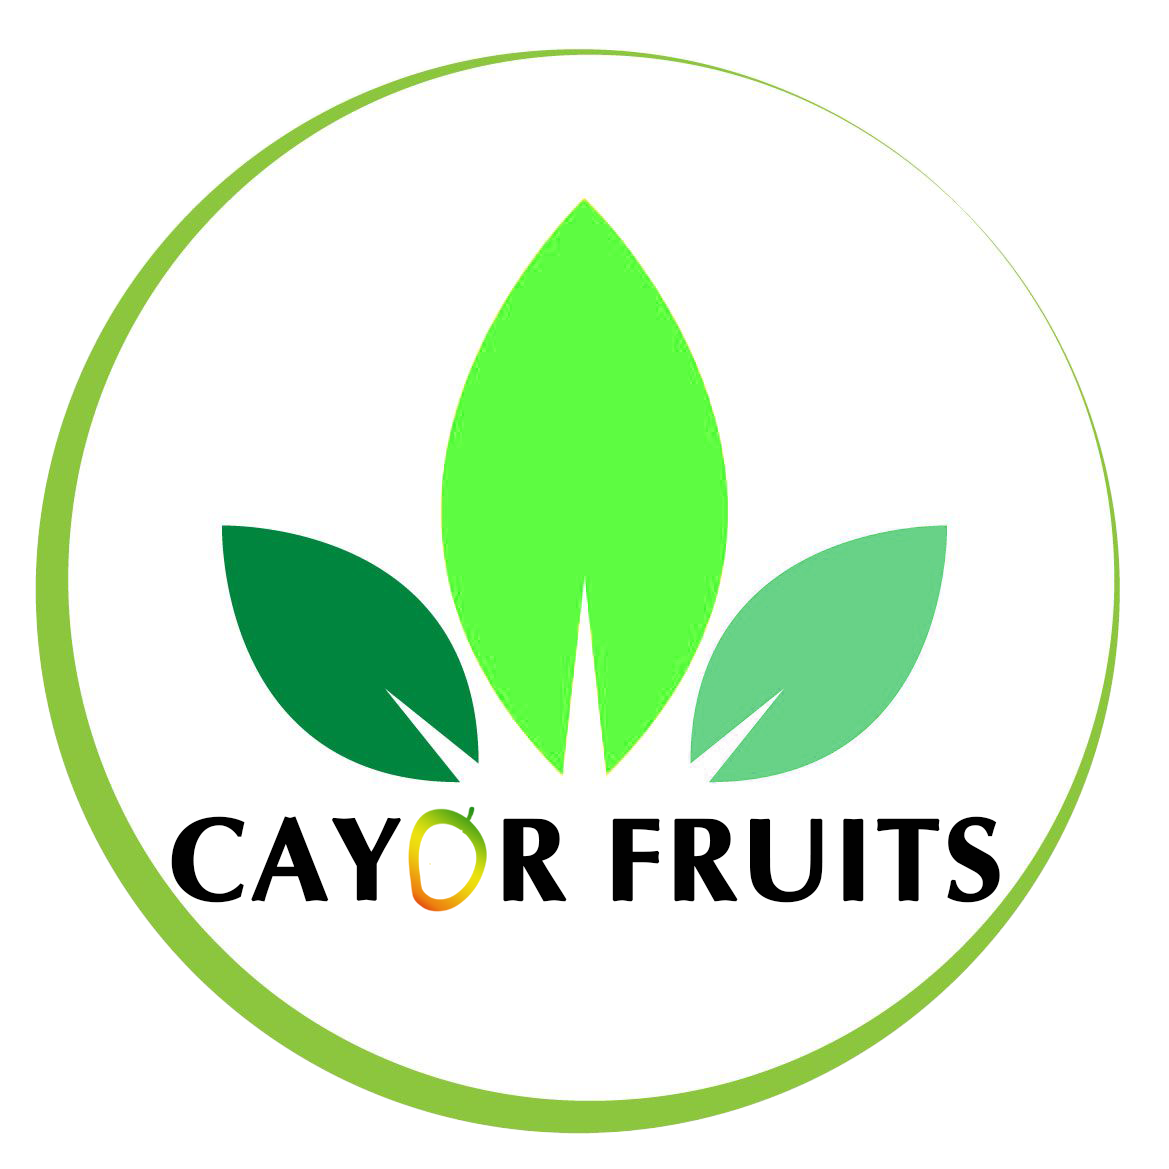 Cayor Fruits